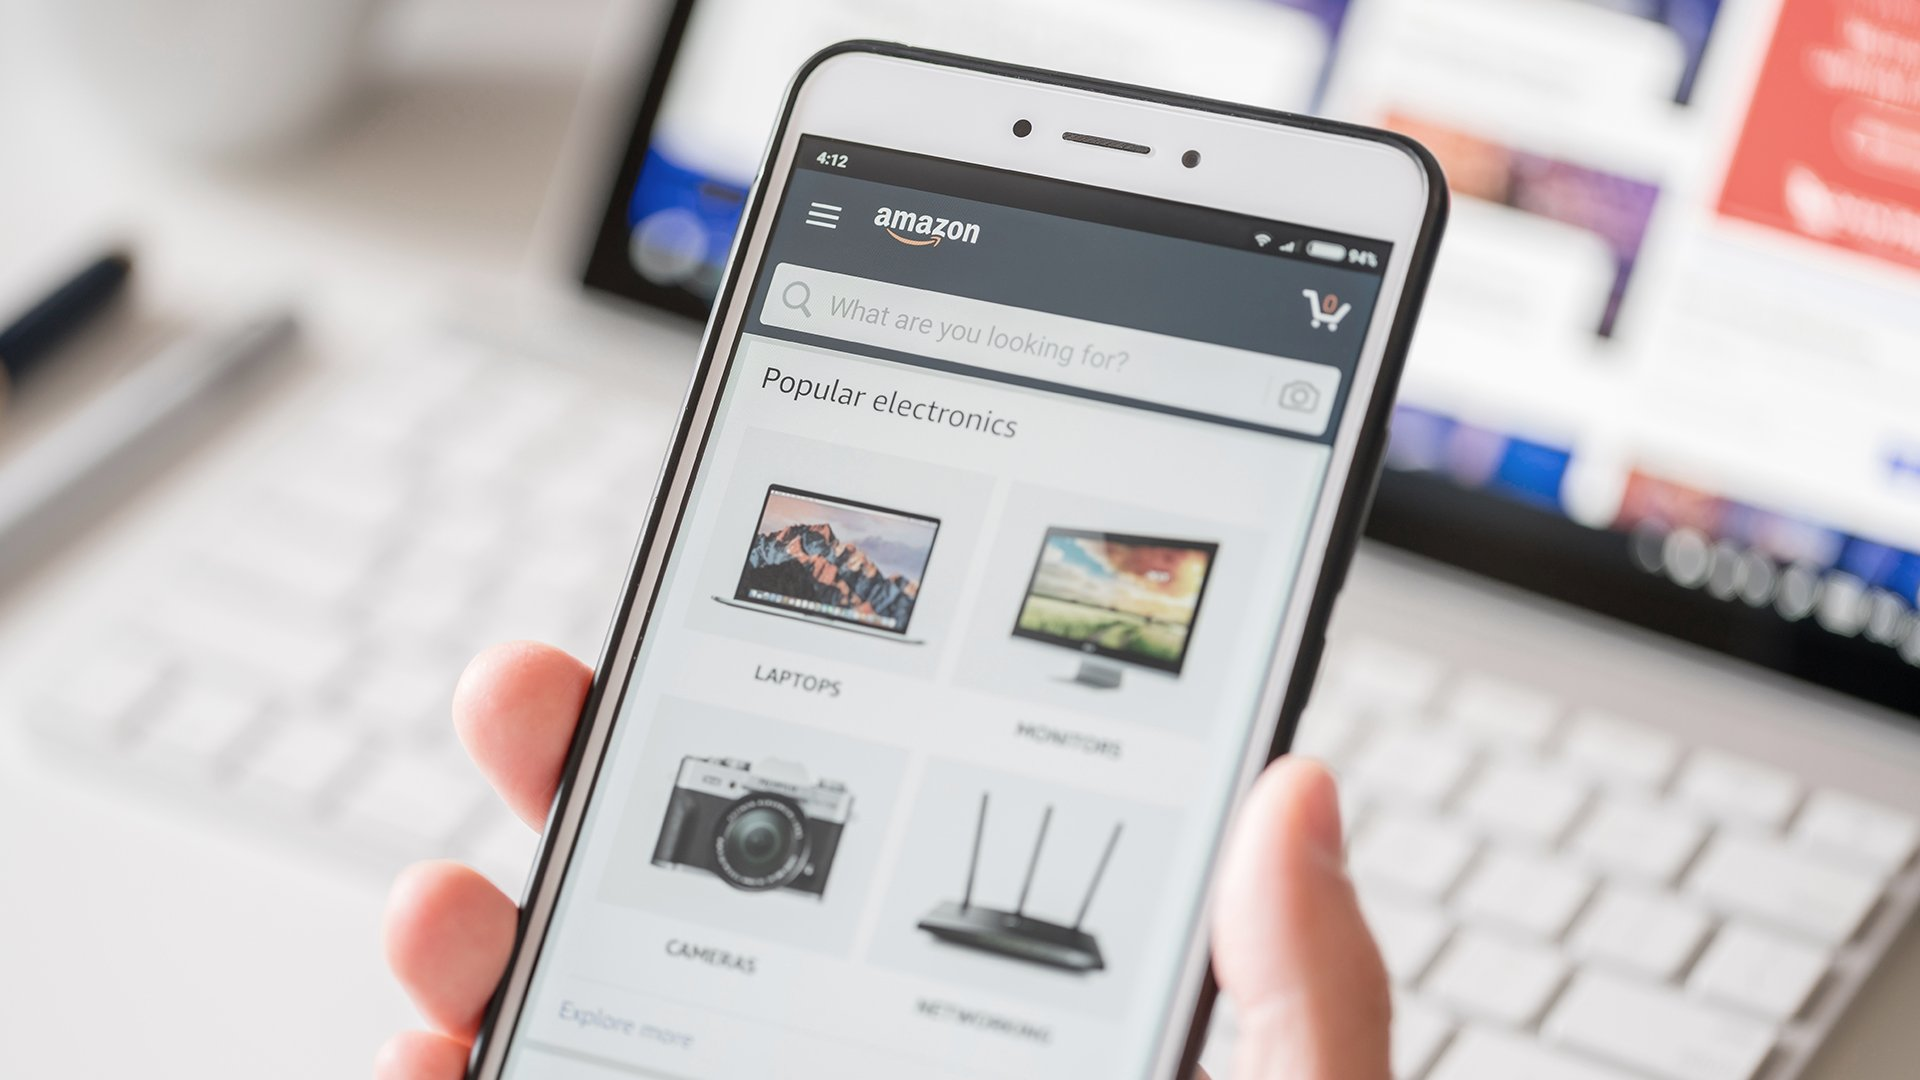 Phone with Amazon search bar